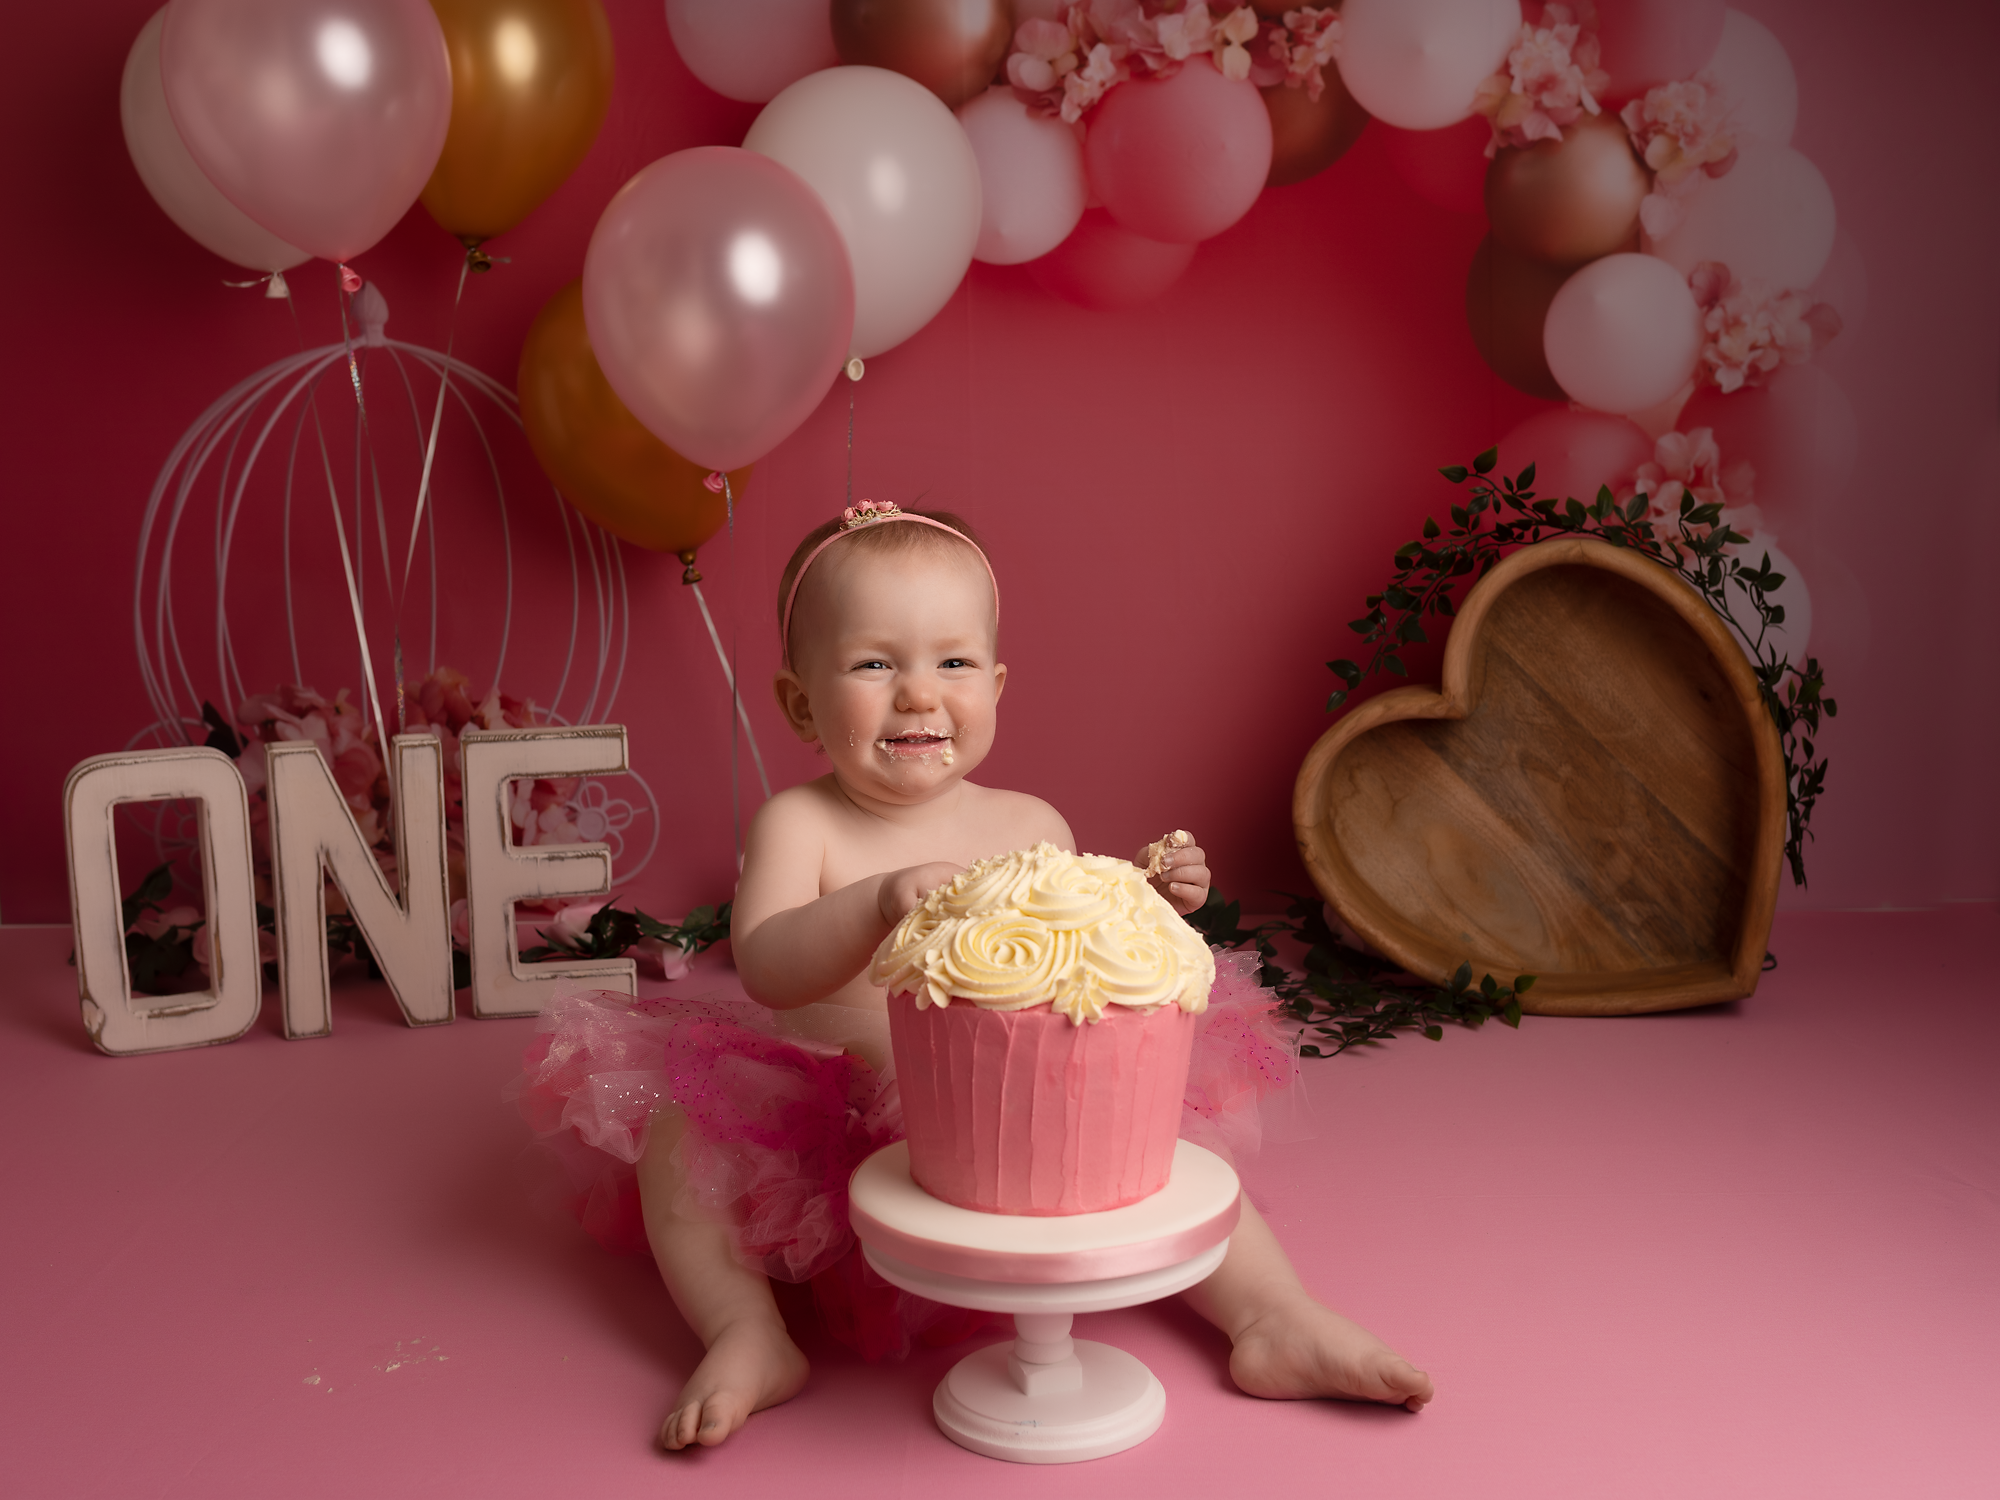 one year old girl with a cake on her cake smash session